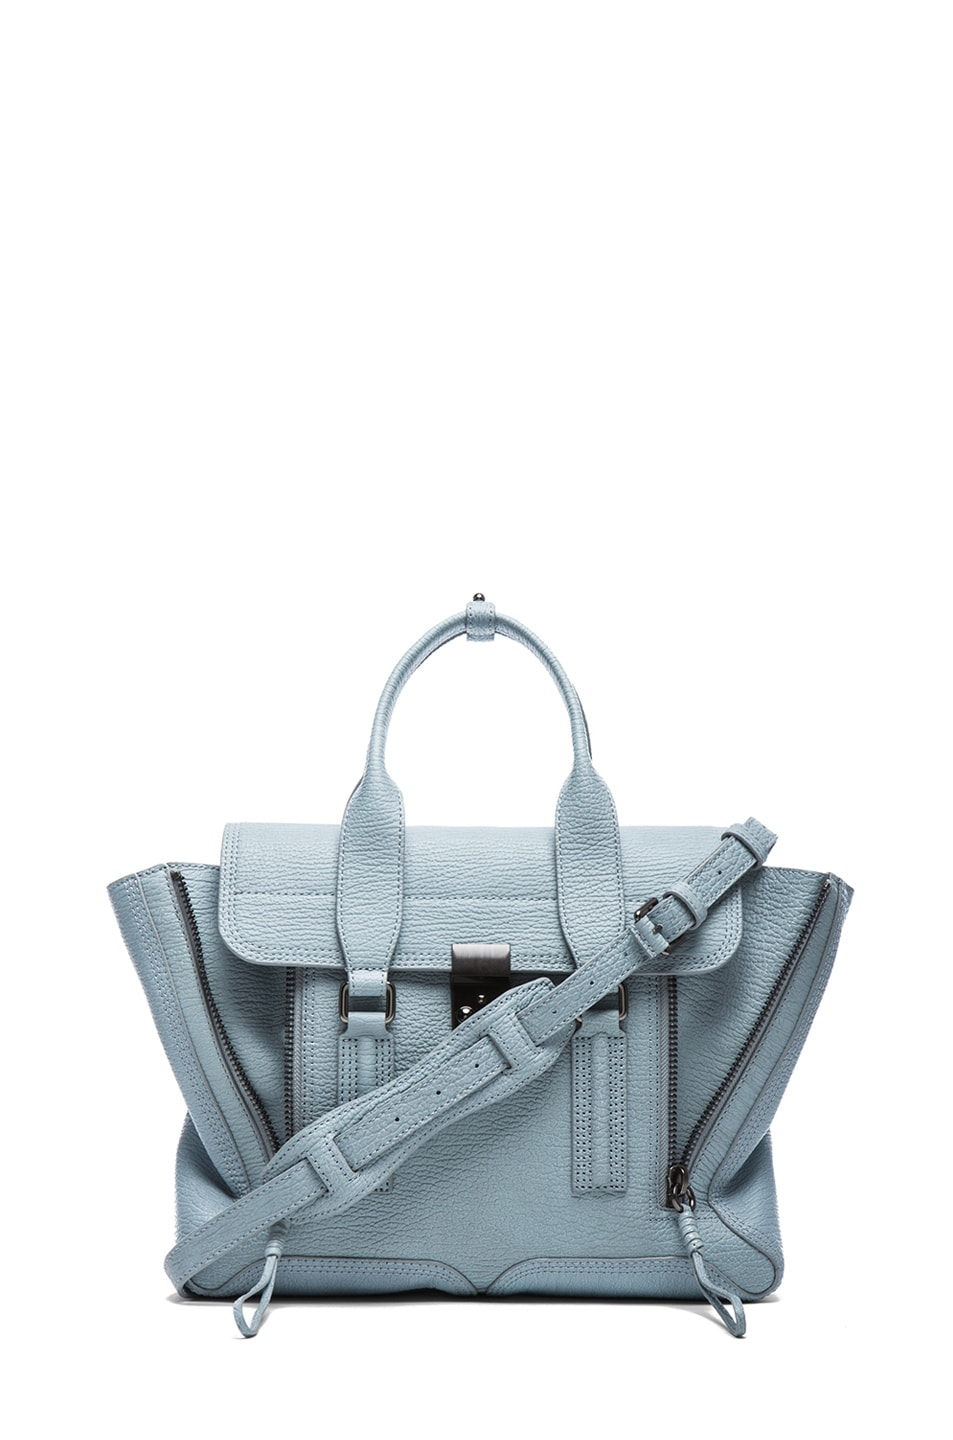 Image 1 of 3.1 phillip lim Medium Pashli Trapeze in Cloud